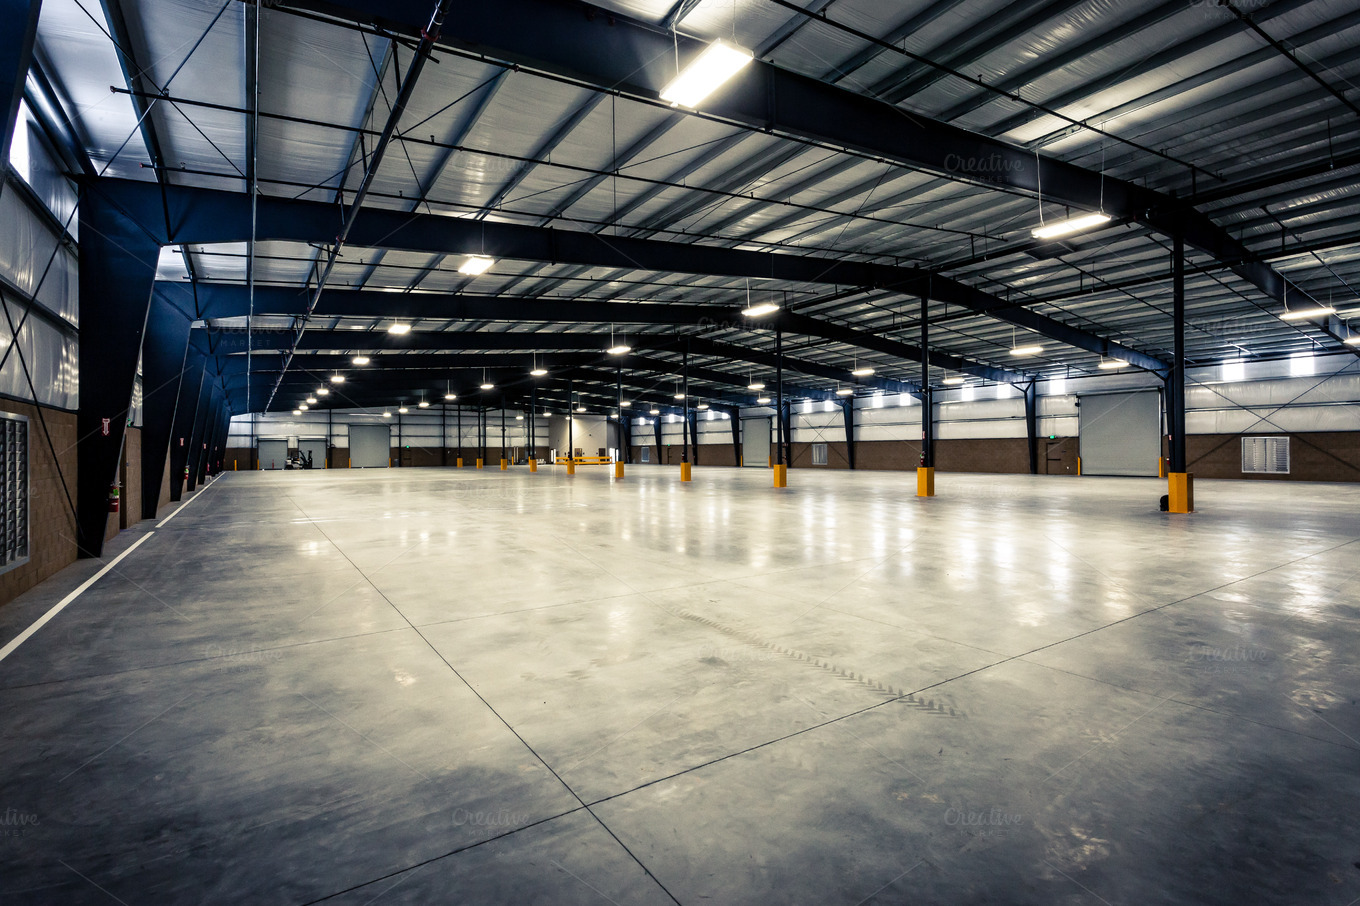 Large empty warehouse industrial photos on creative market for Warehouse plans designs